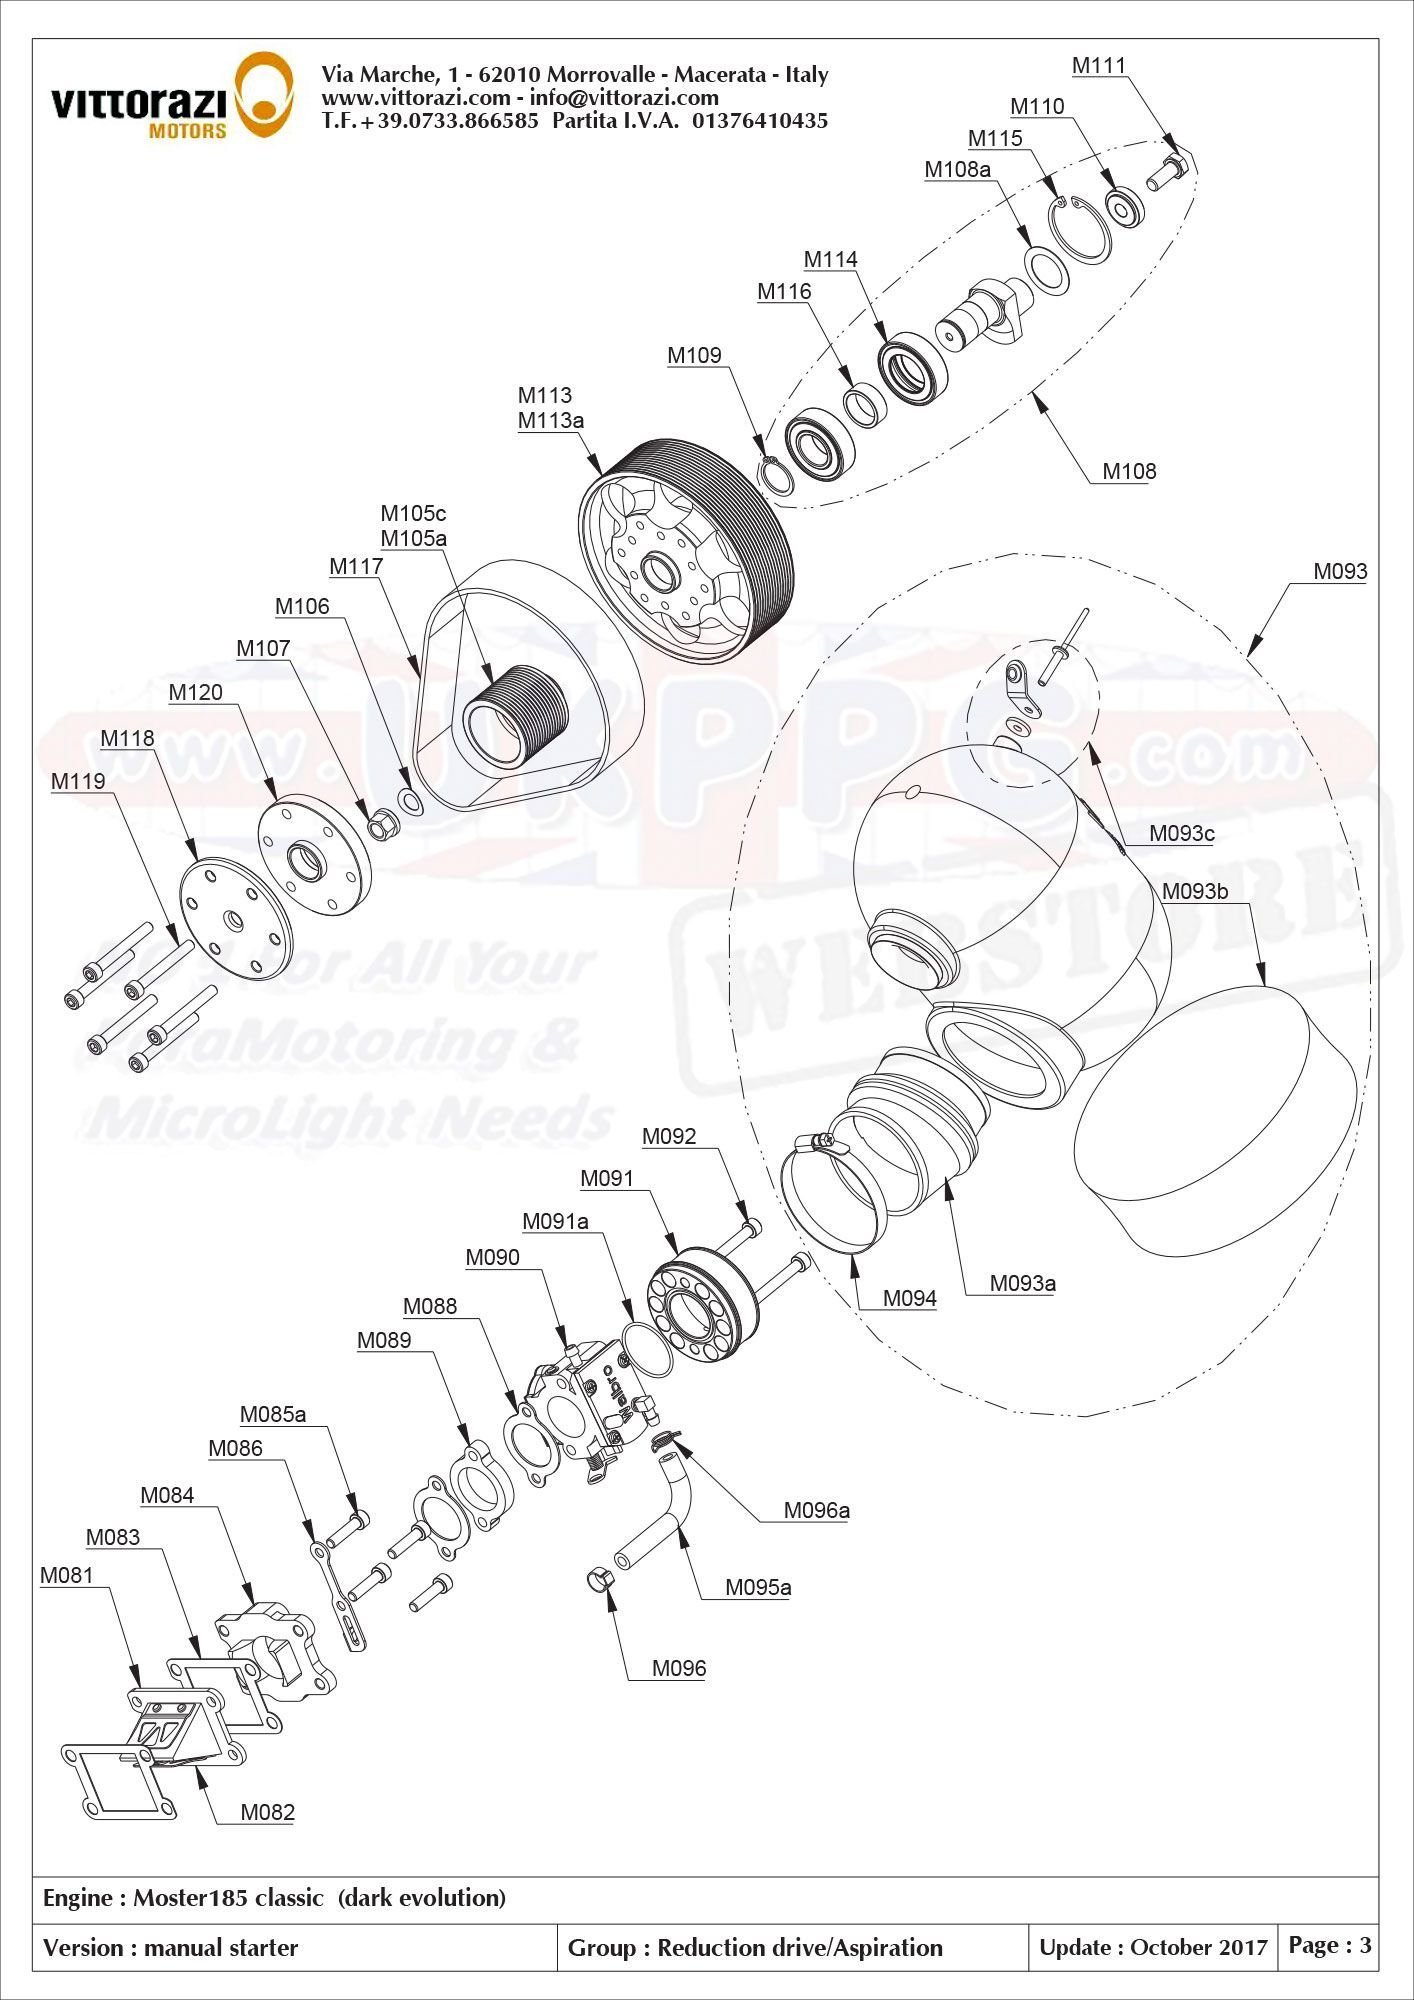 hight resolution of m096a double wire spring hose clump 10 4 11 mm qty req 1